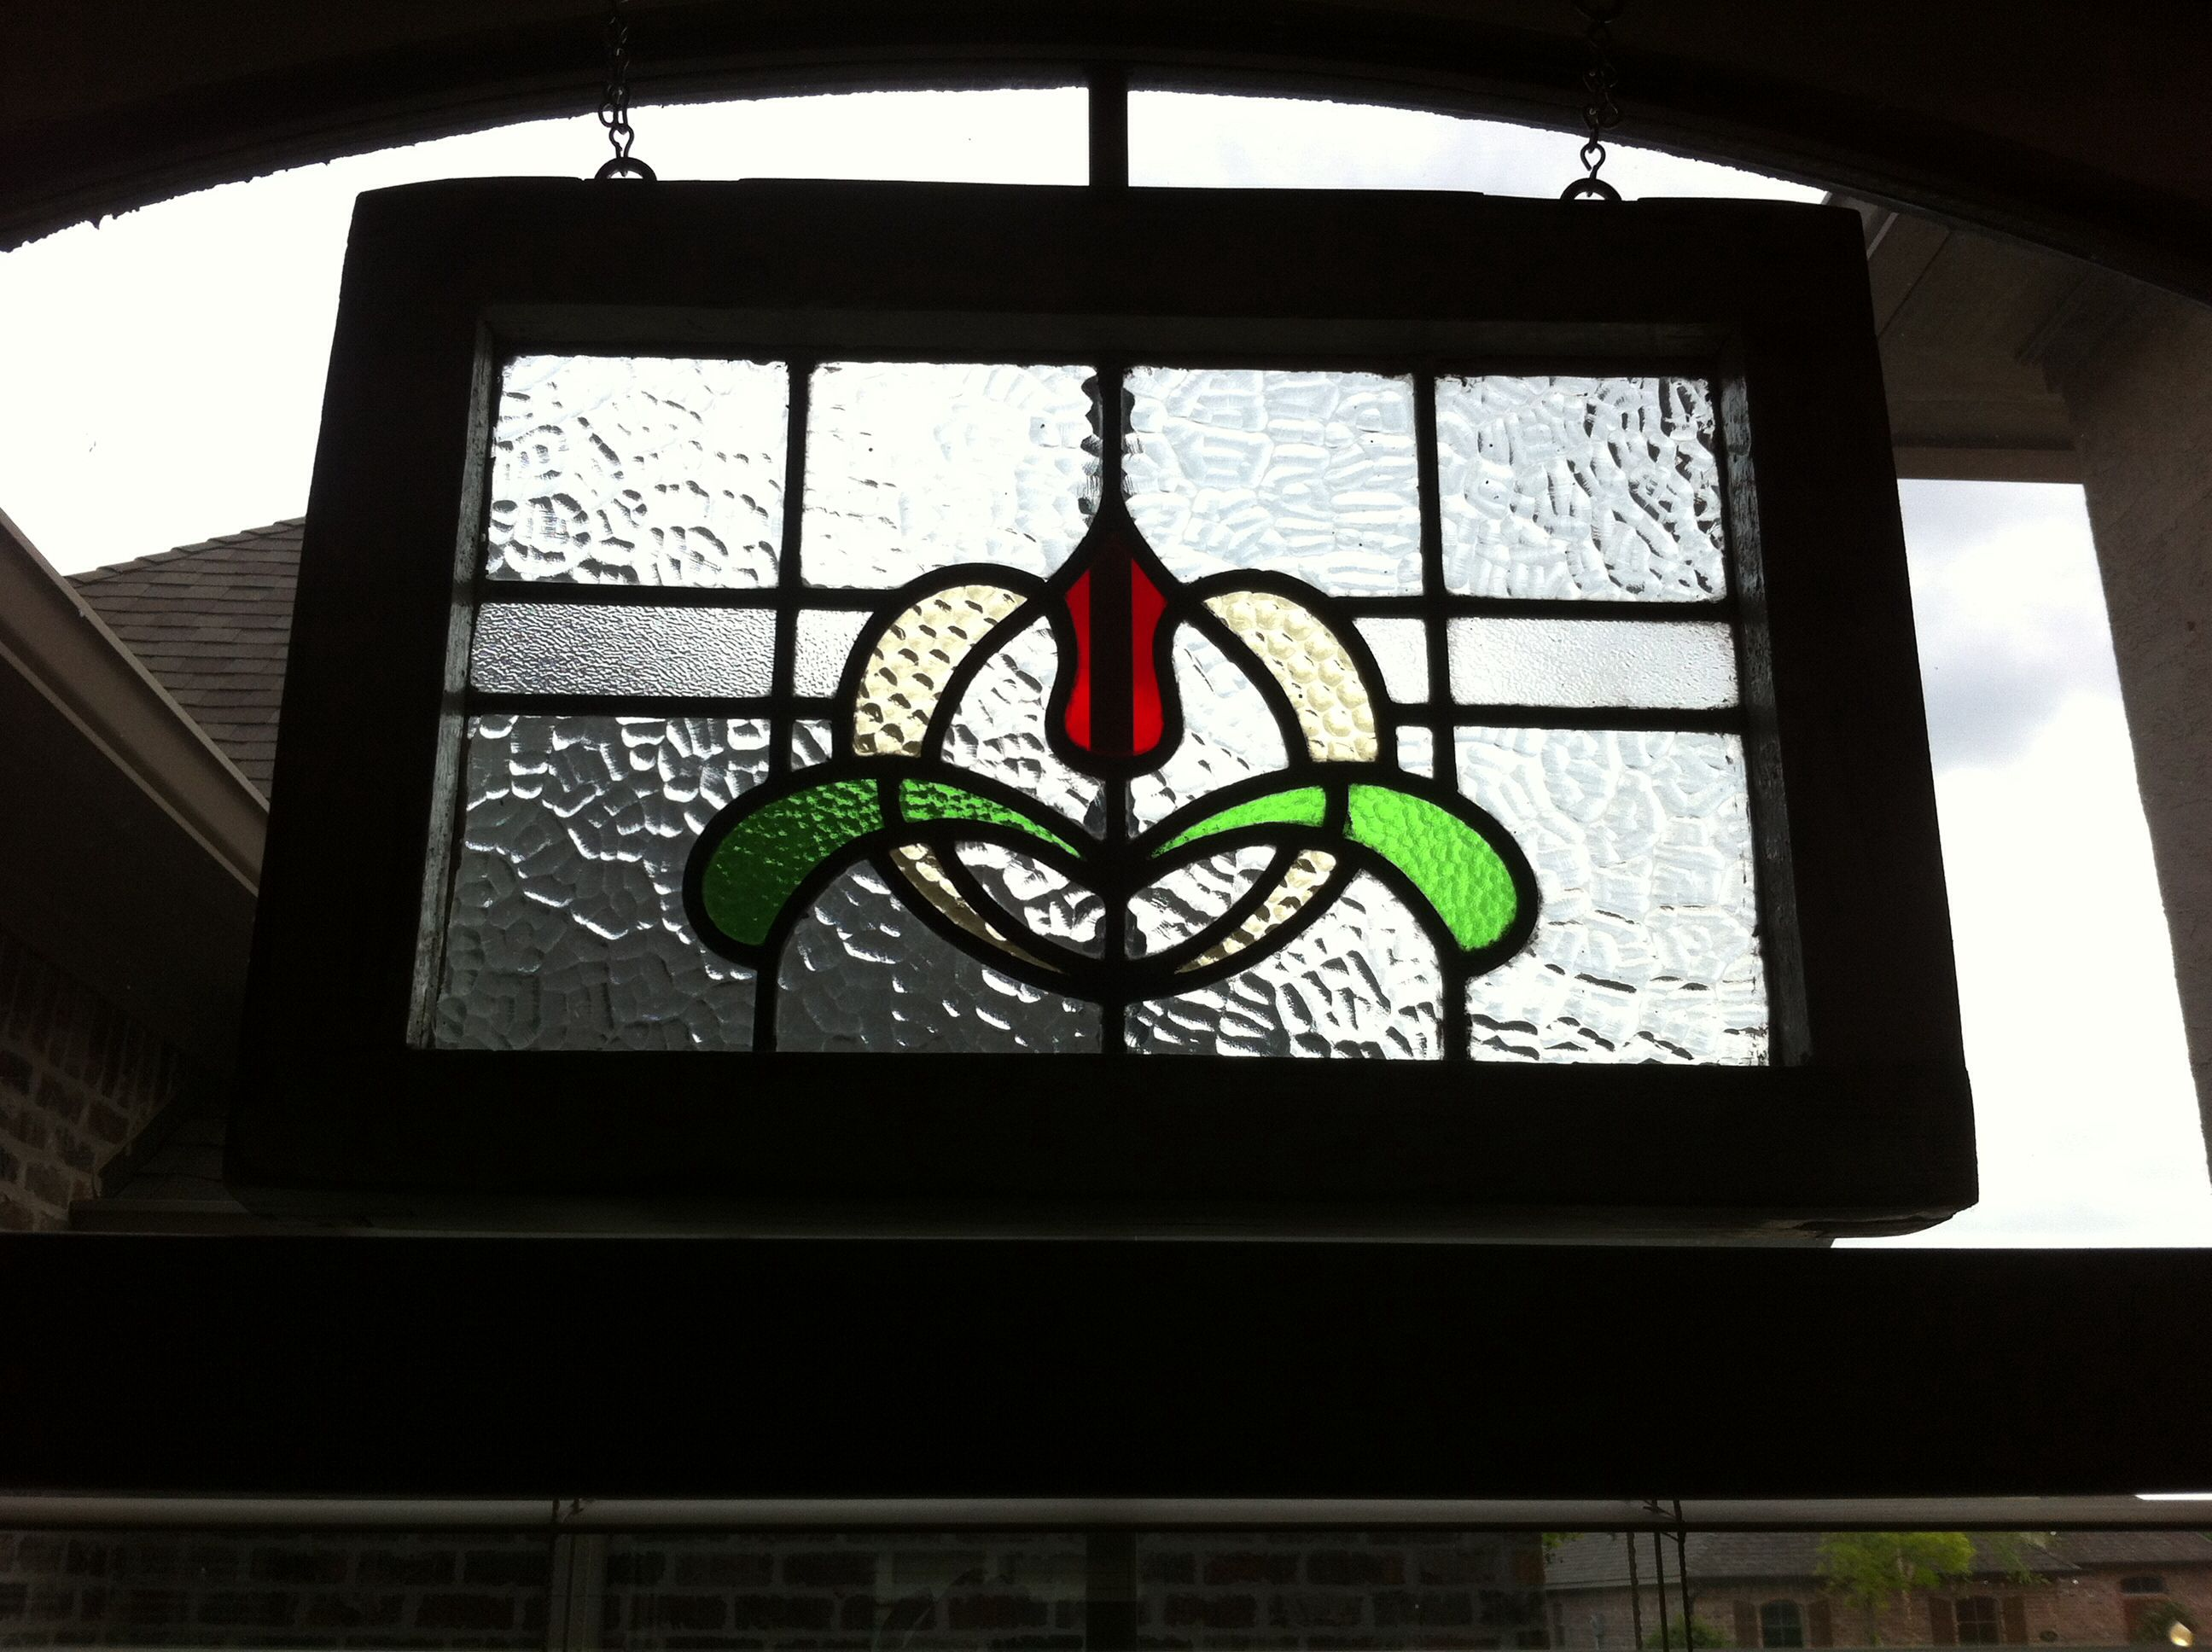 Various different textured glass patterns used in this pretty design